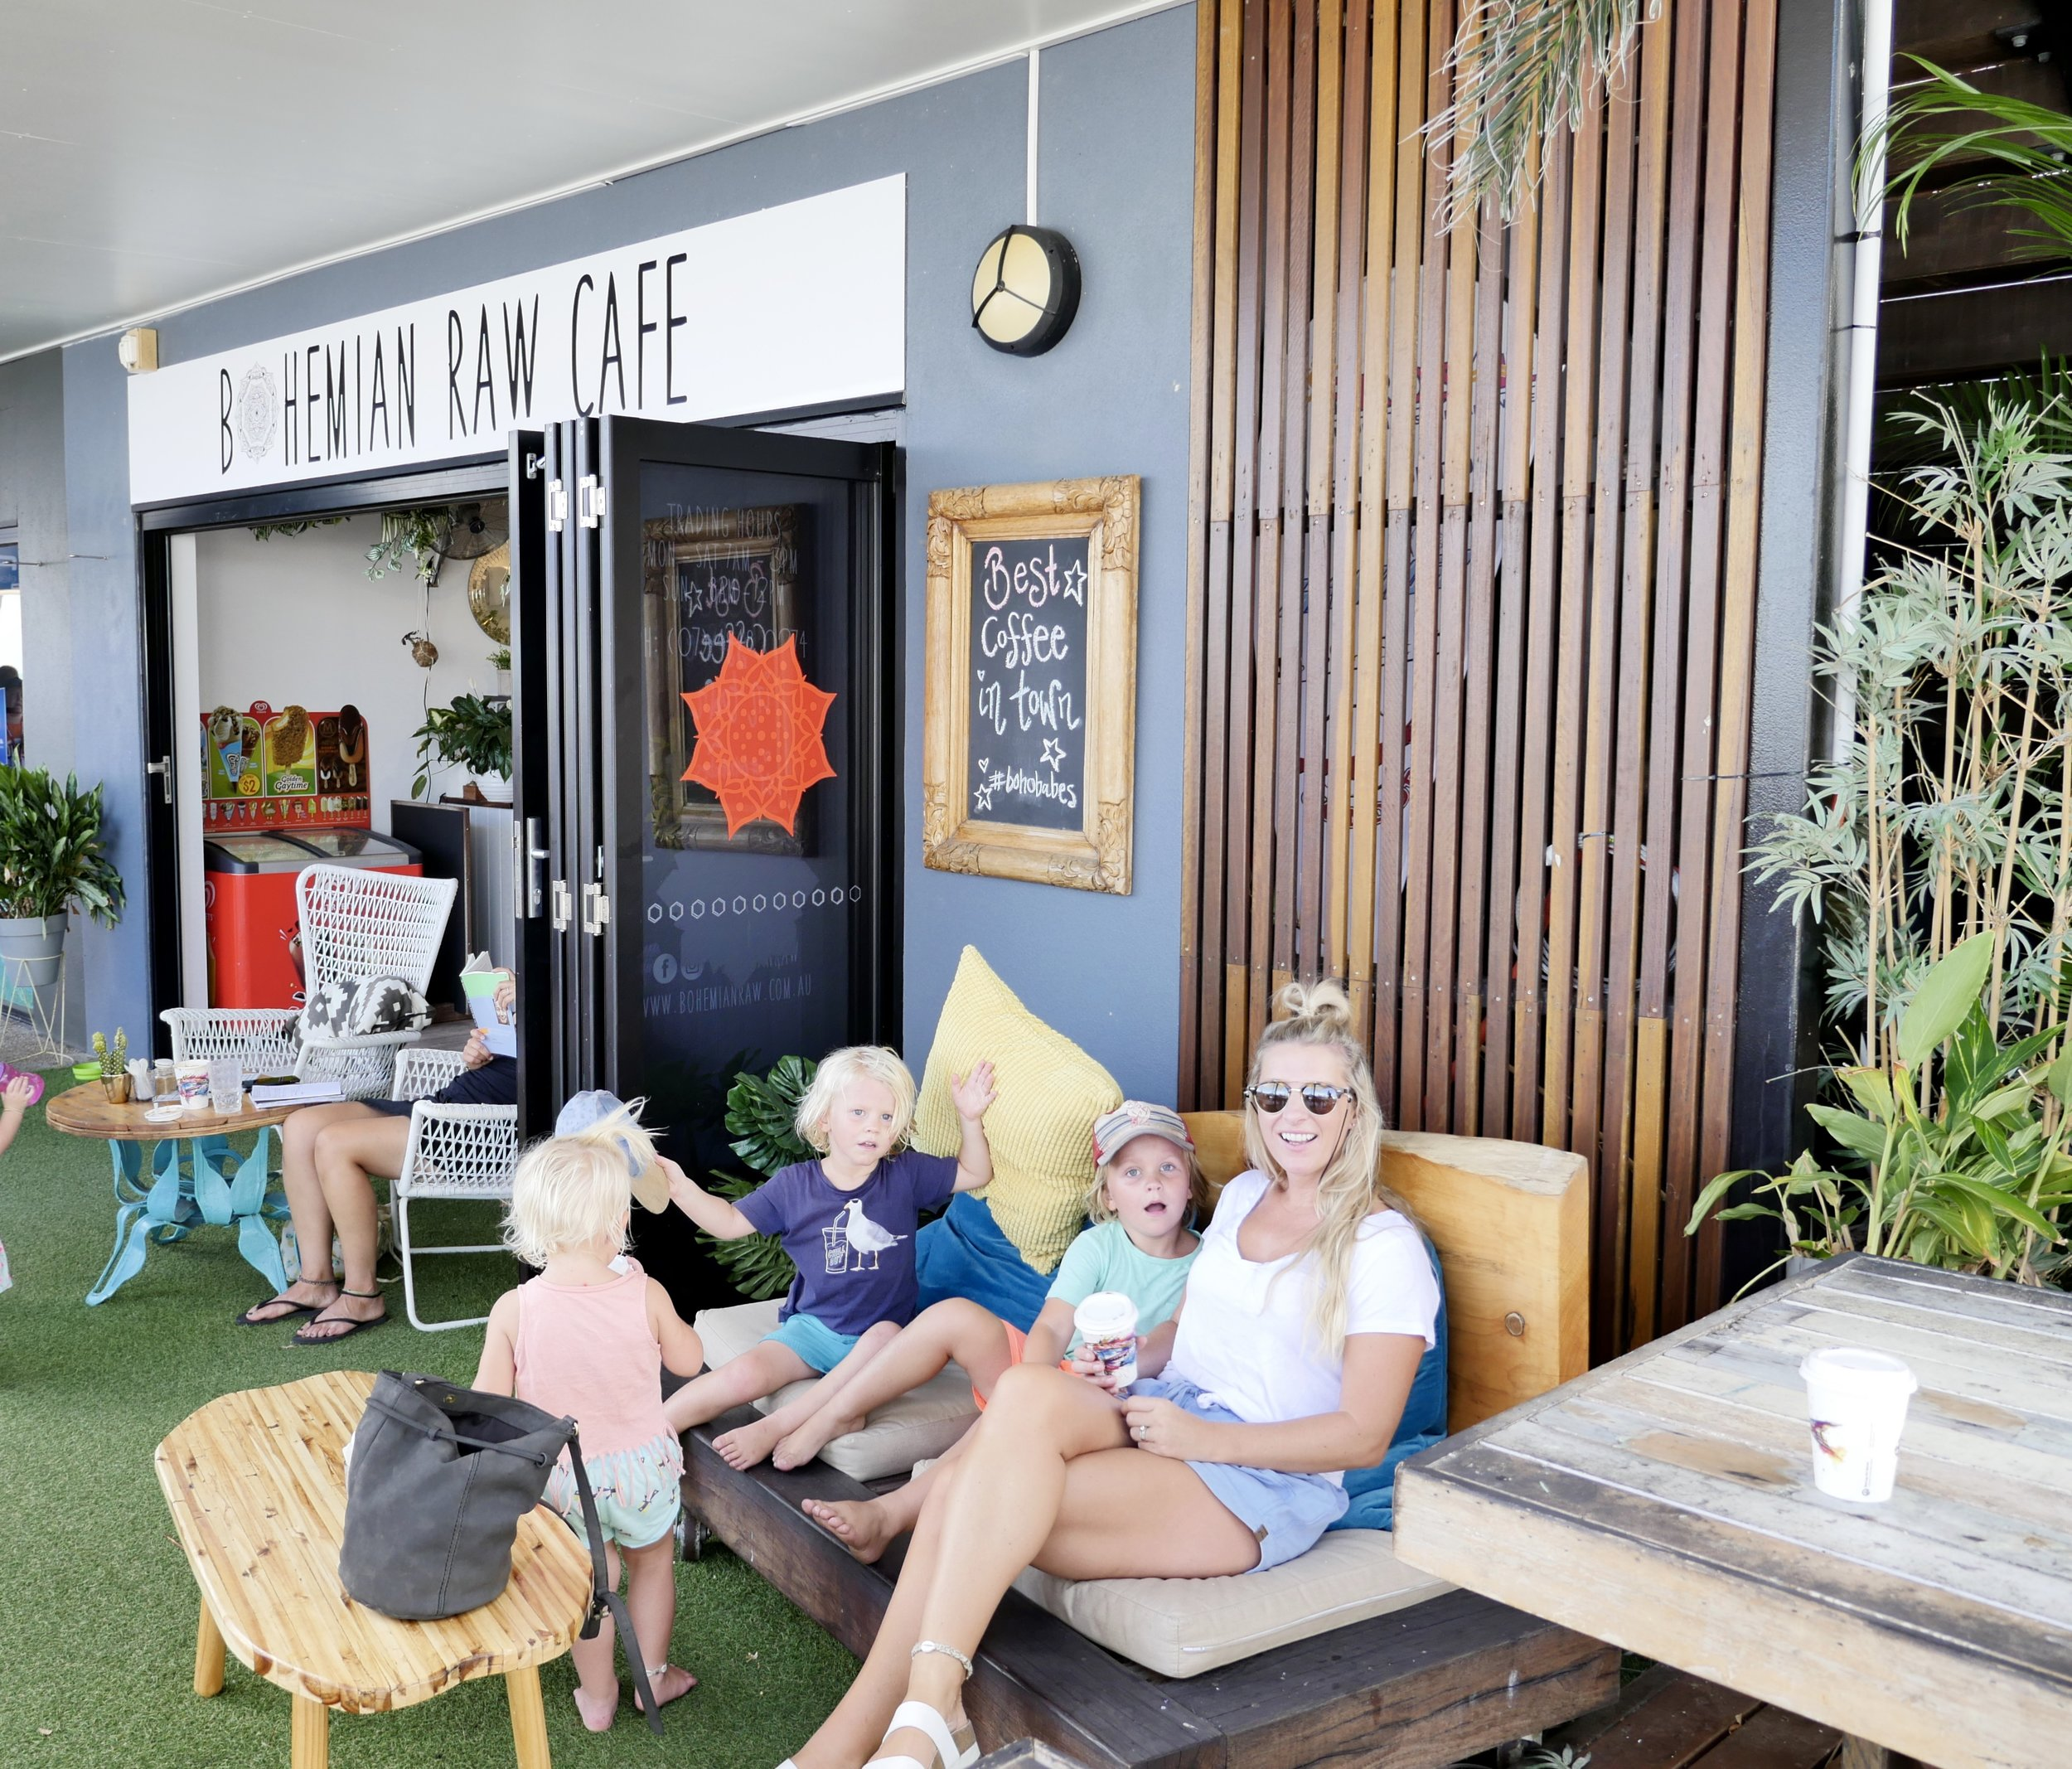 BOHEMIAN RAW CAFE AT THE ABEL POINT MARINA - THE BEST COFFEE IN TOWN